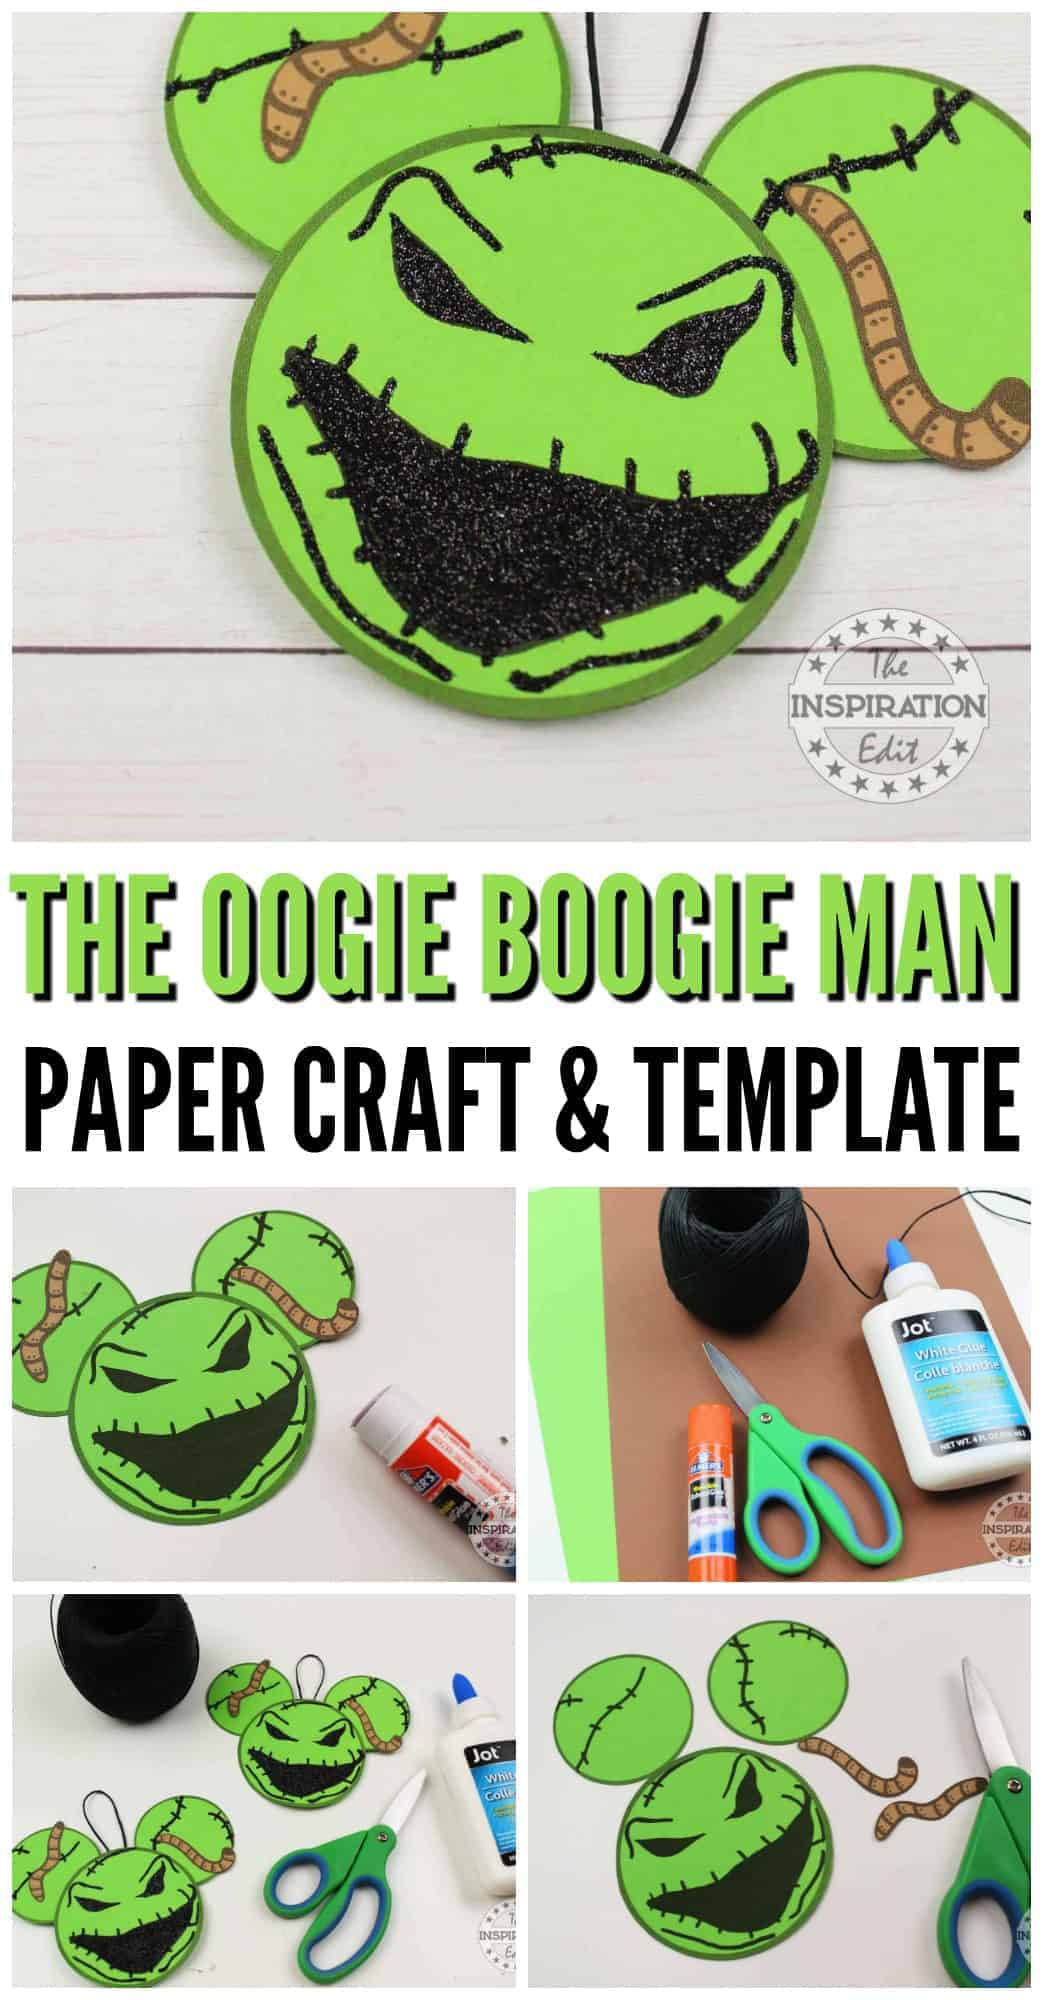 the nightmare before christmas crafts with the oogie boogie man free template